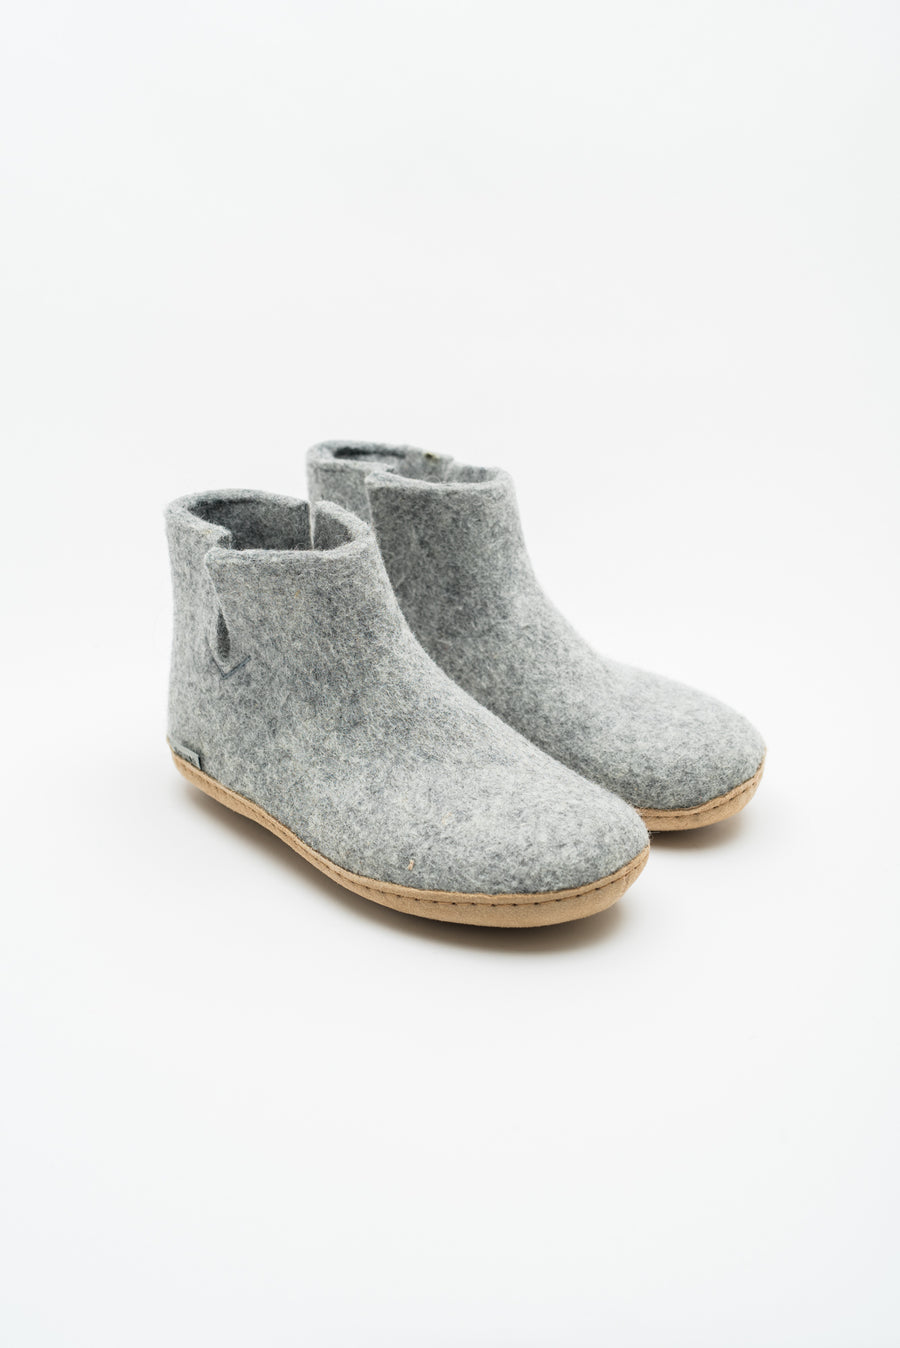 Men's Low Boot - Grey